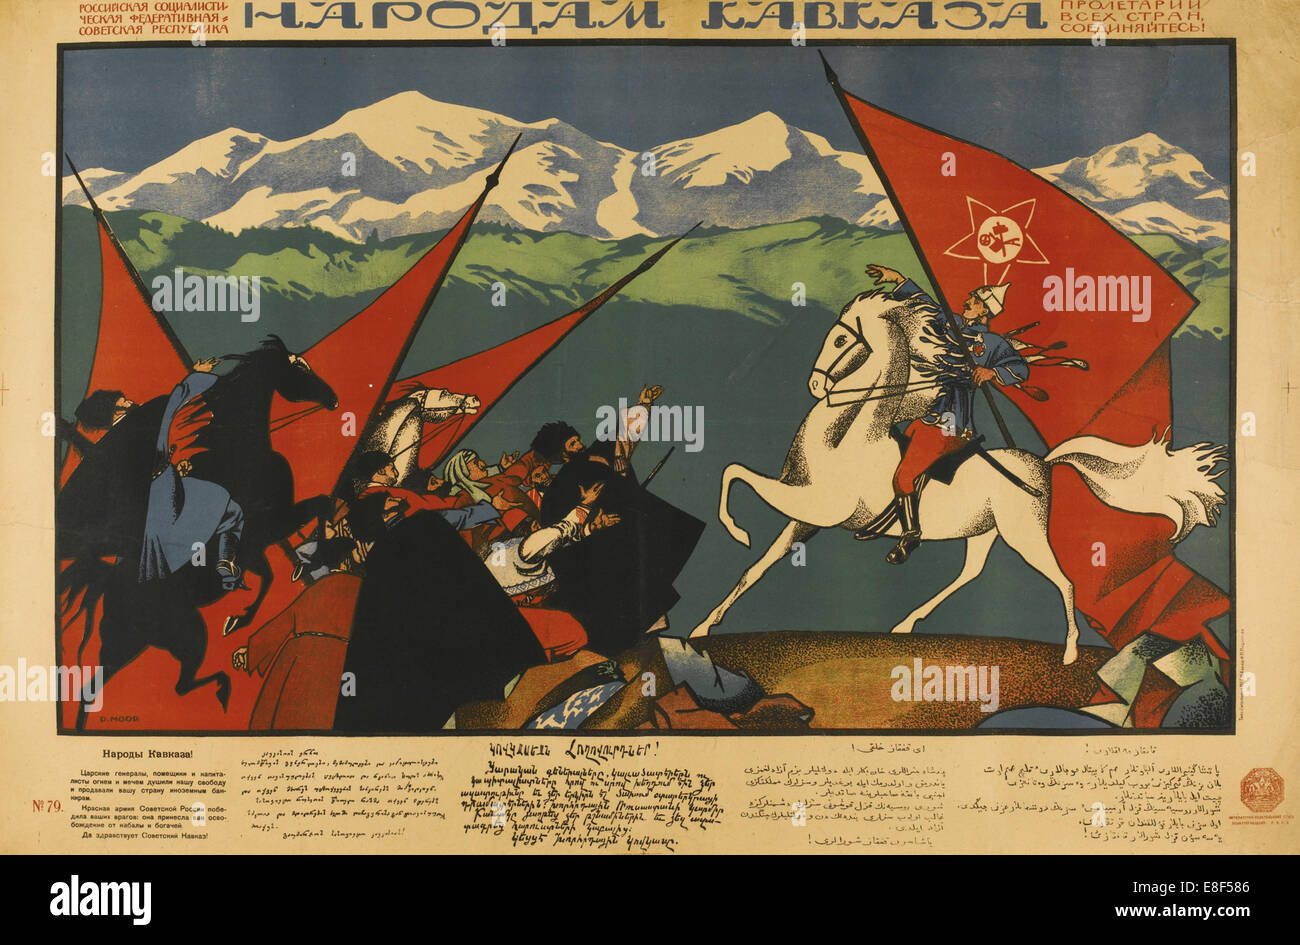 To Peoples of the Caucasus. Artist: Moor, Dmitri Stachievich (1883-1946) - Stock Image